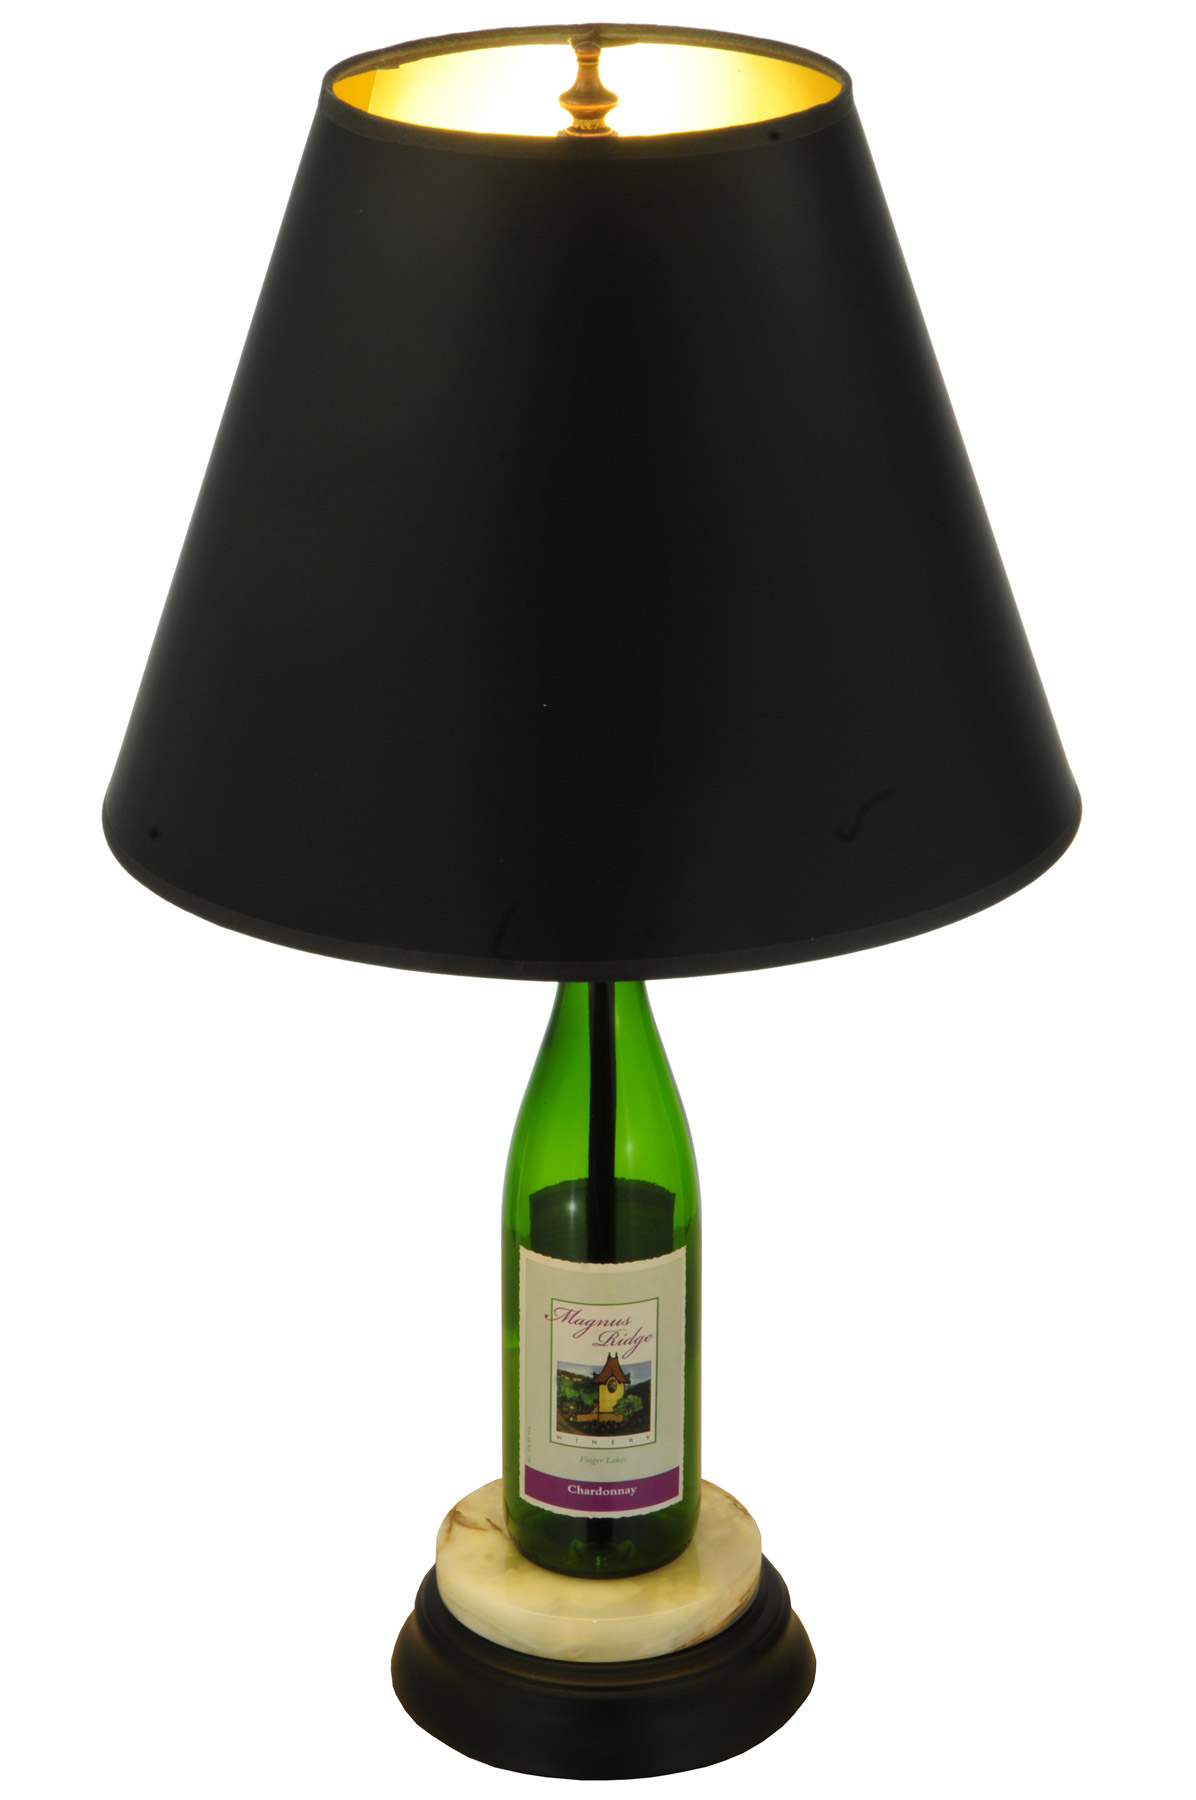 Meyda 134264 Personalized Wine Bottle Table Lamp